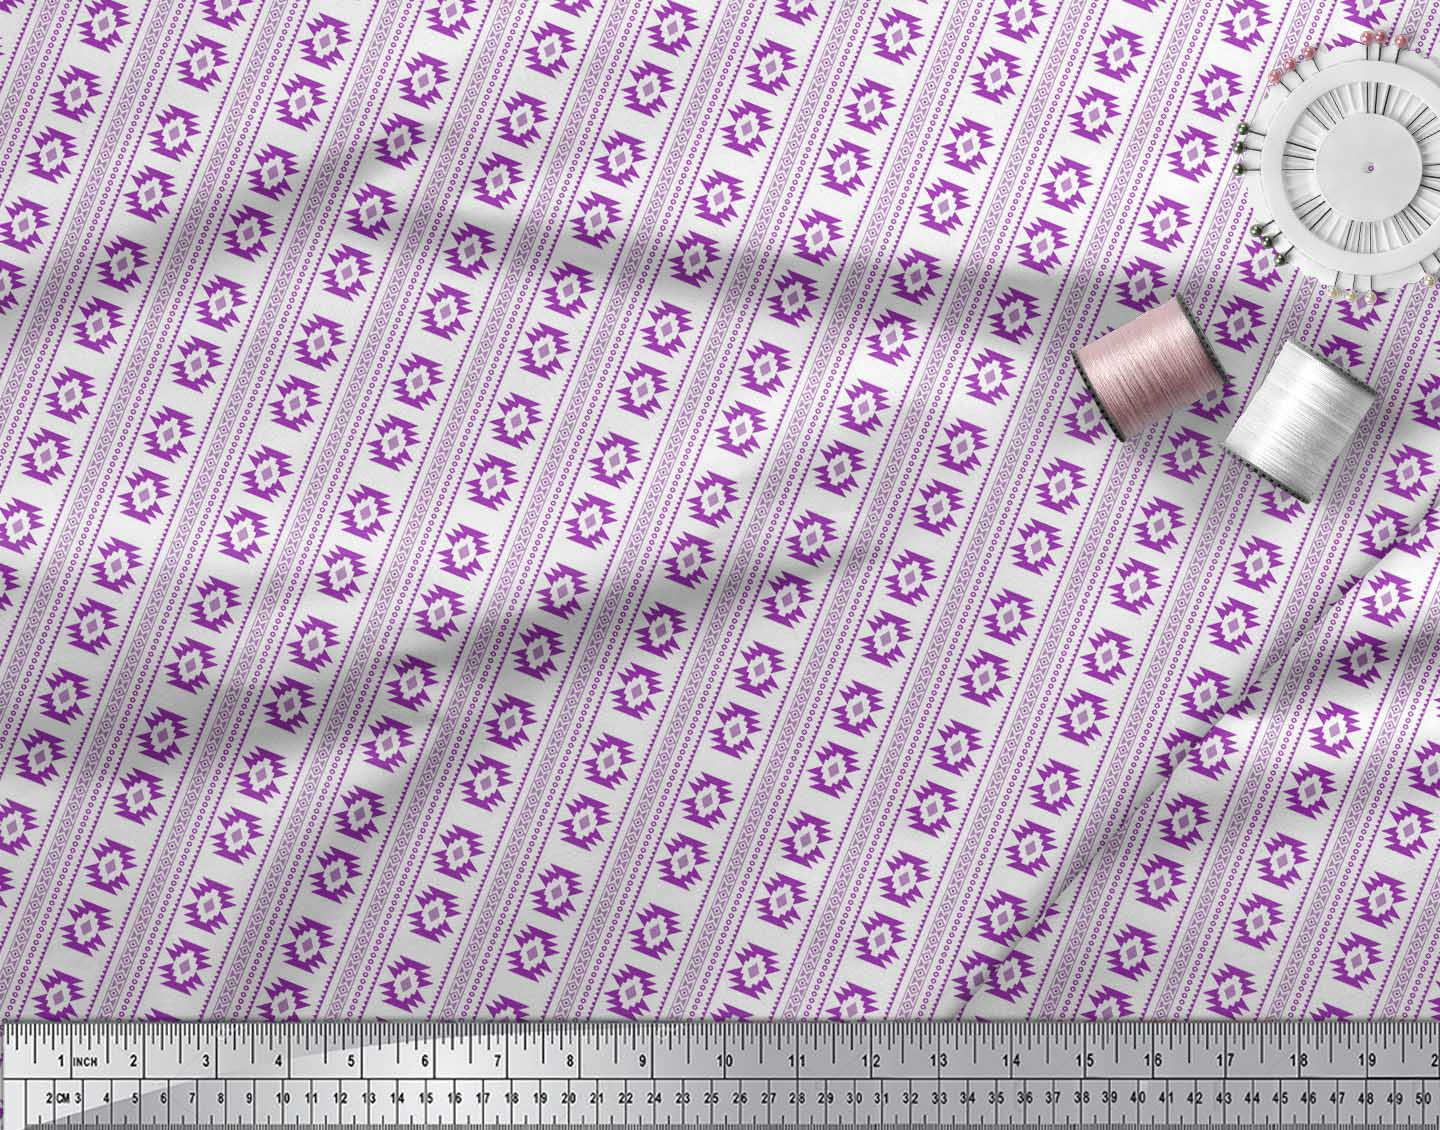 Soimoi-Purple-Cotton-Poplin-Fabric-Aztec-Geometric-Print-Fabric-EWx thumbnail 3